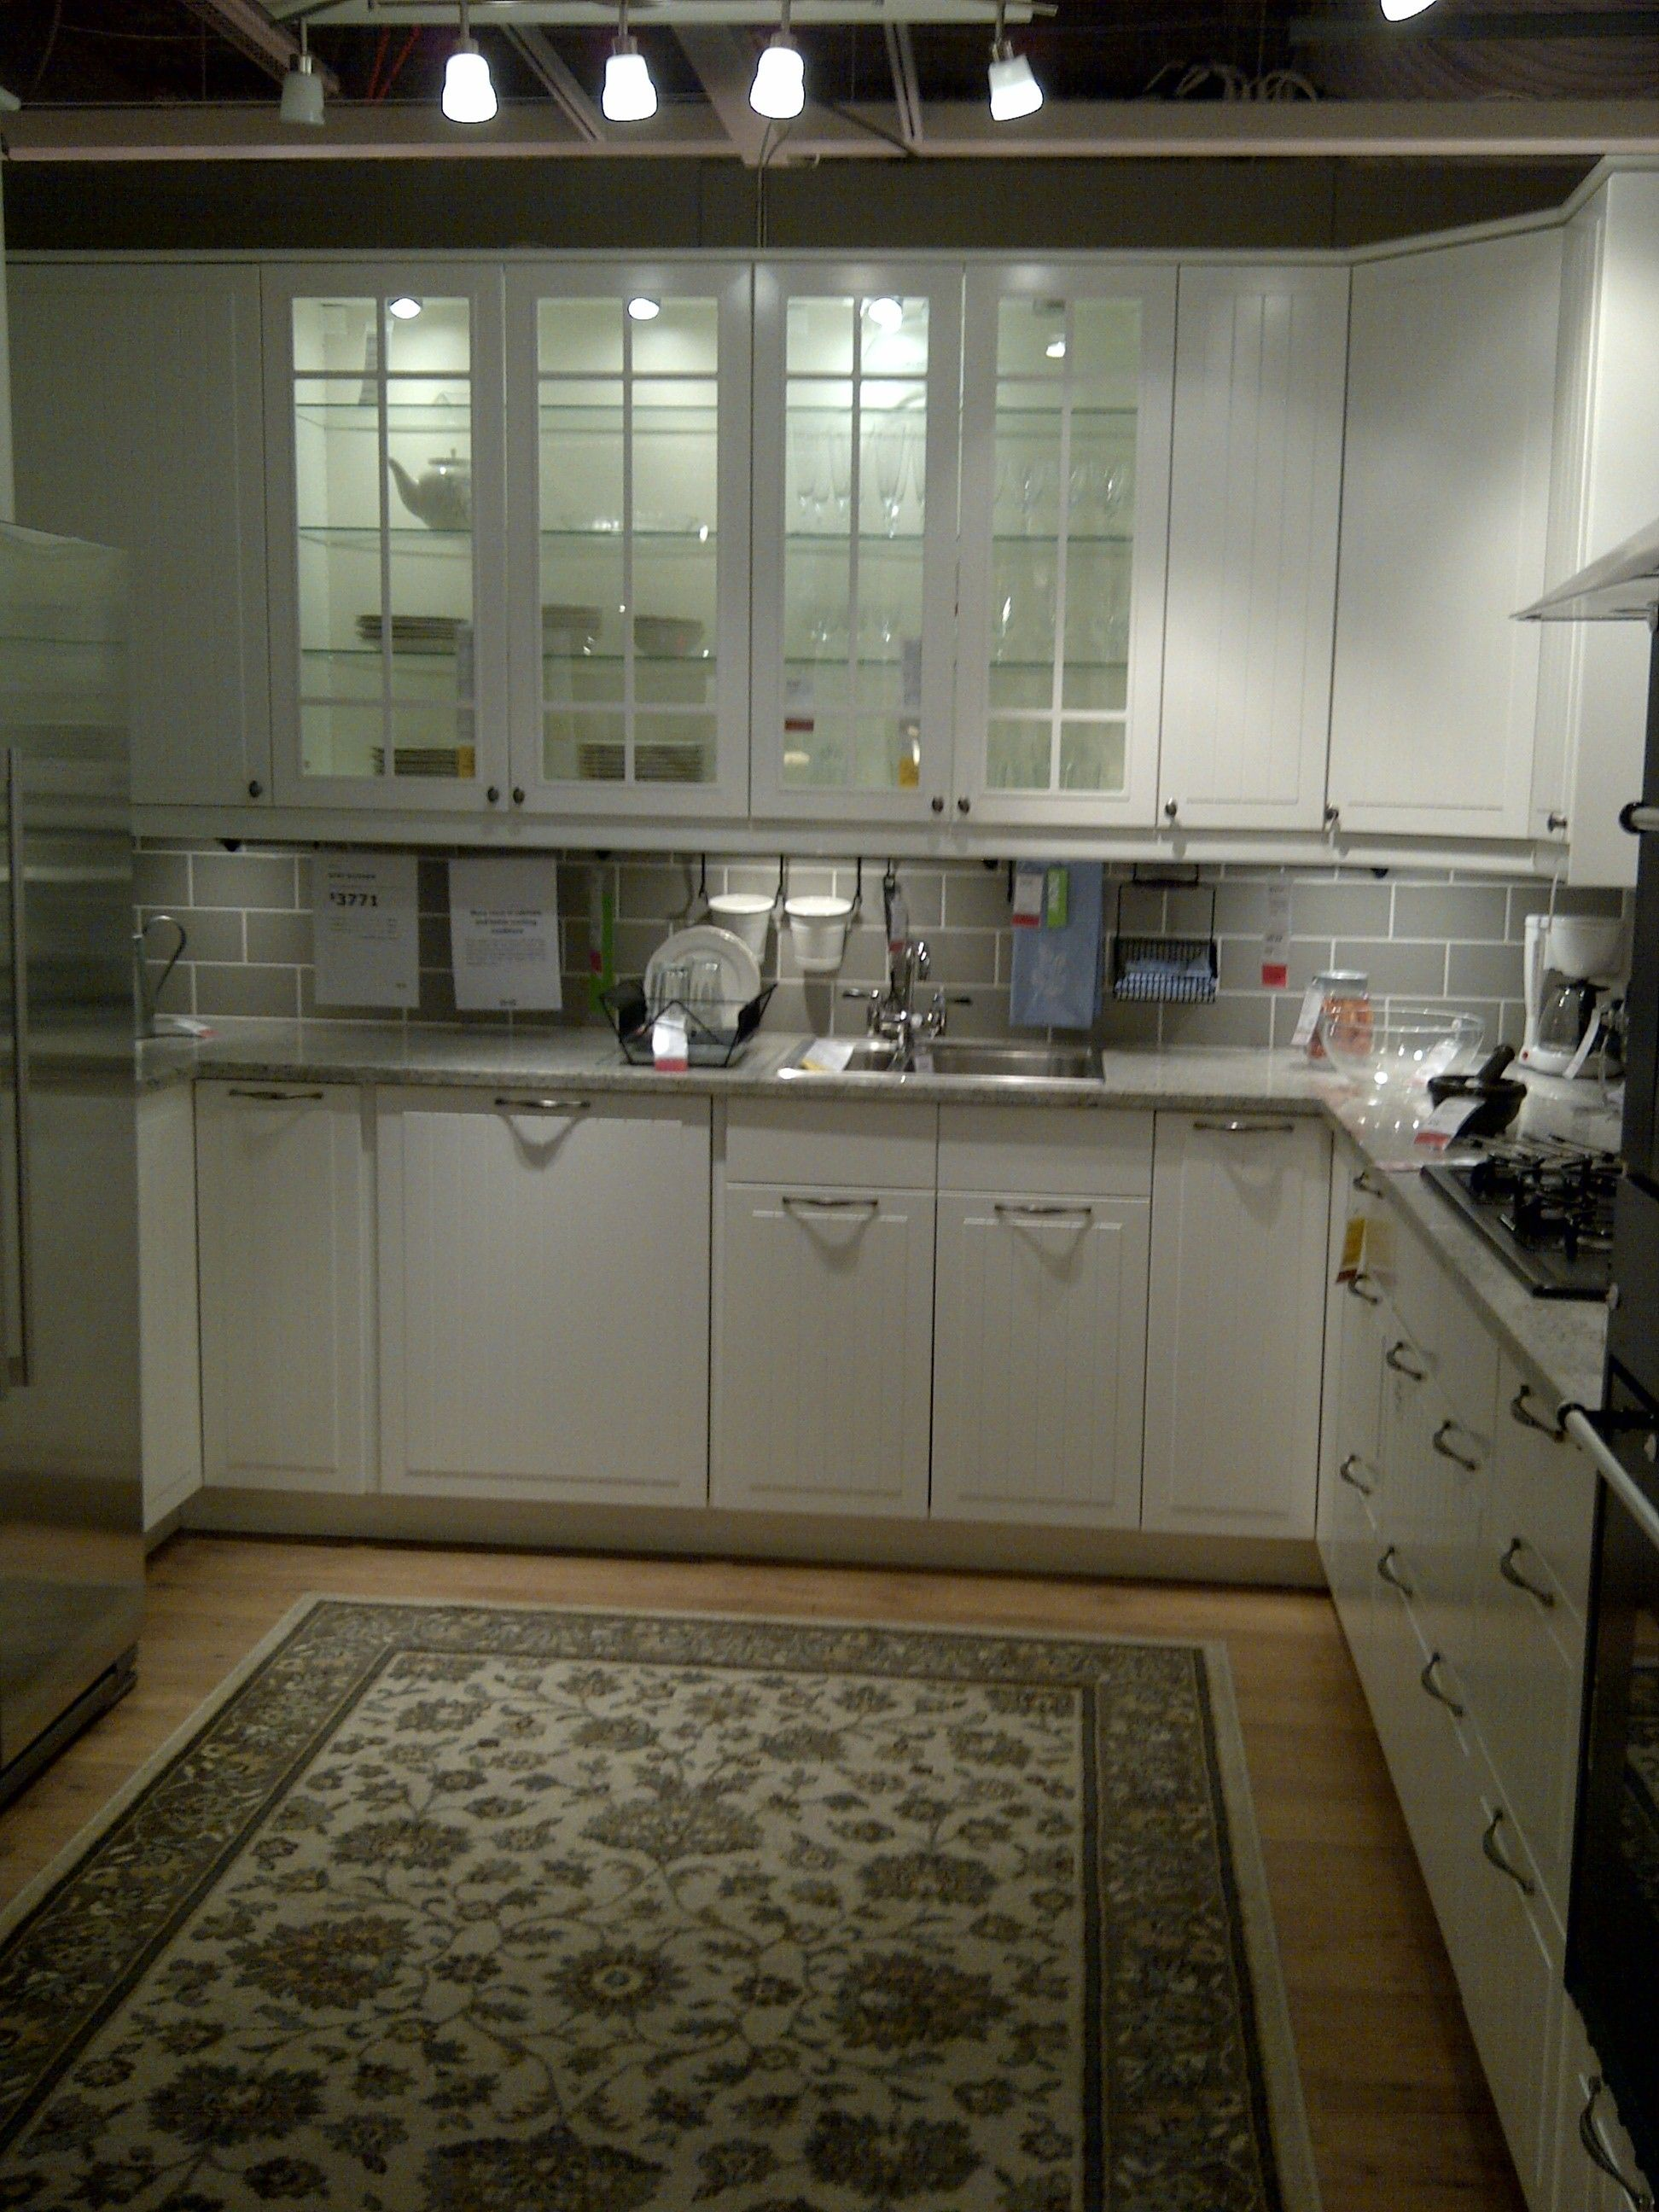 Ikea Kitchen Display Stat In White Lights In The Glass Door